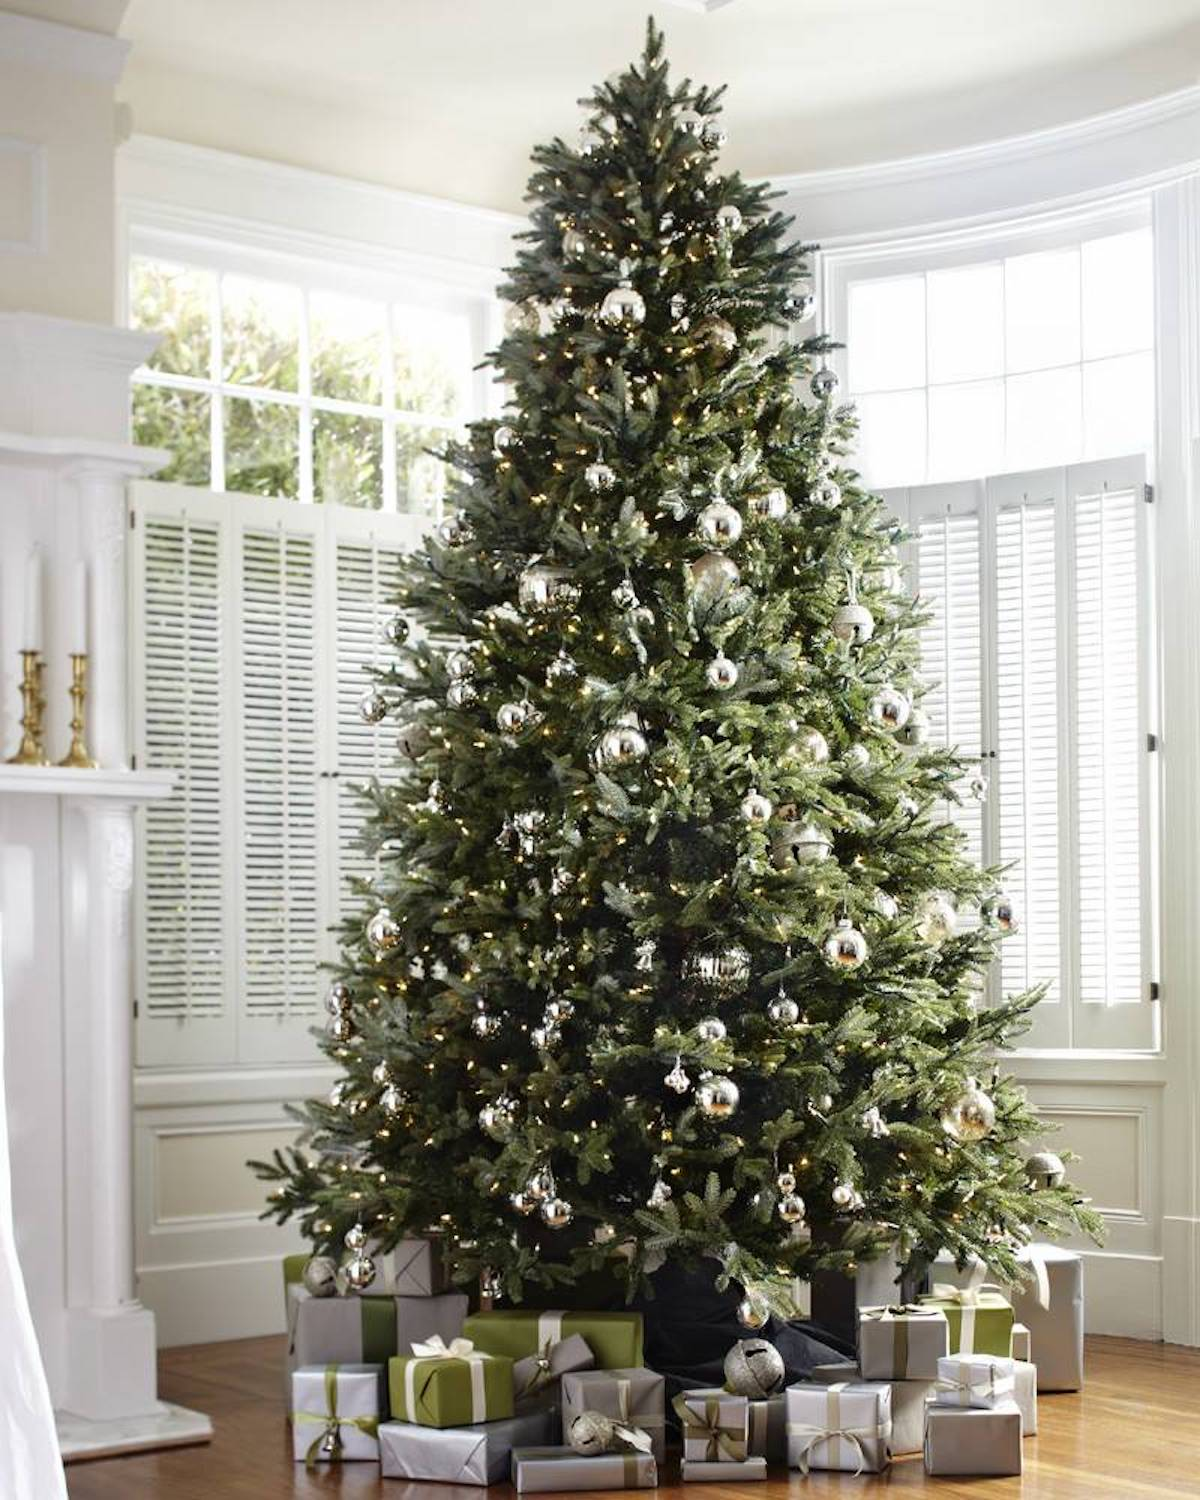 artificial christmas tree with ornaments and wrapped presents